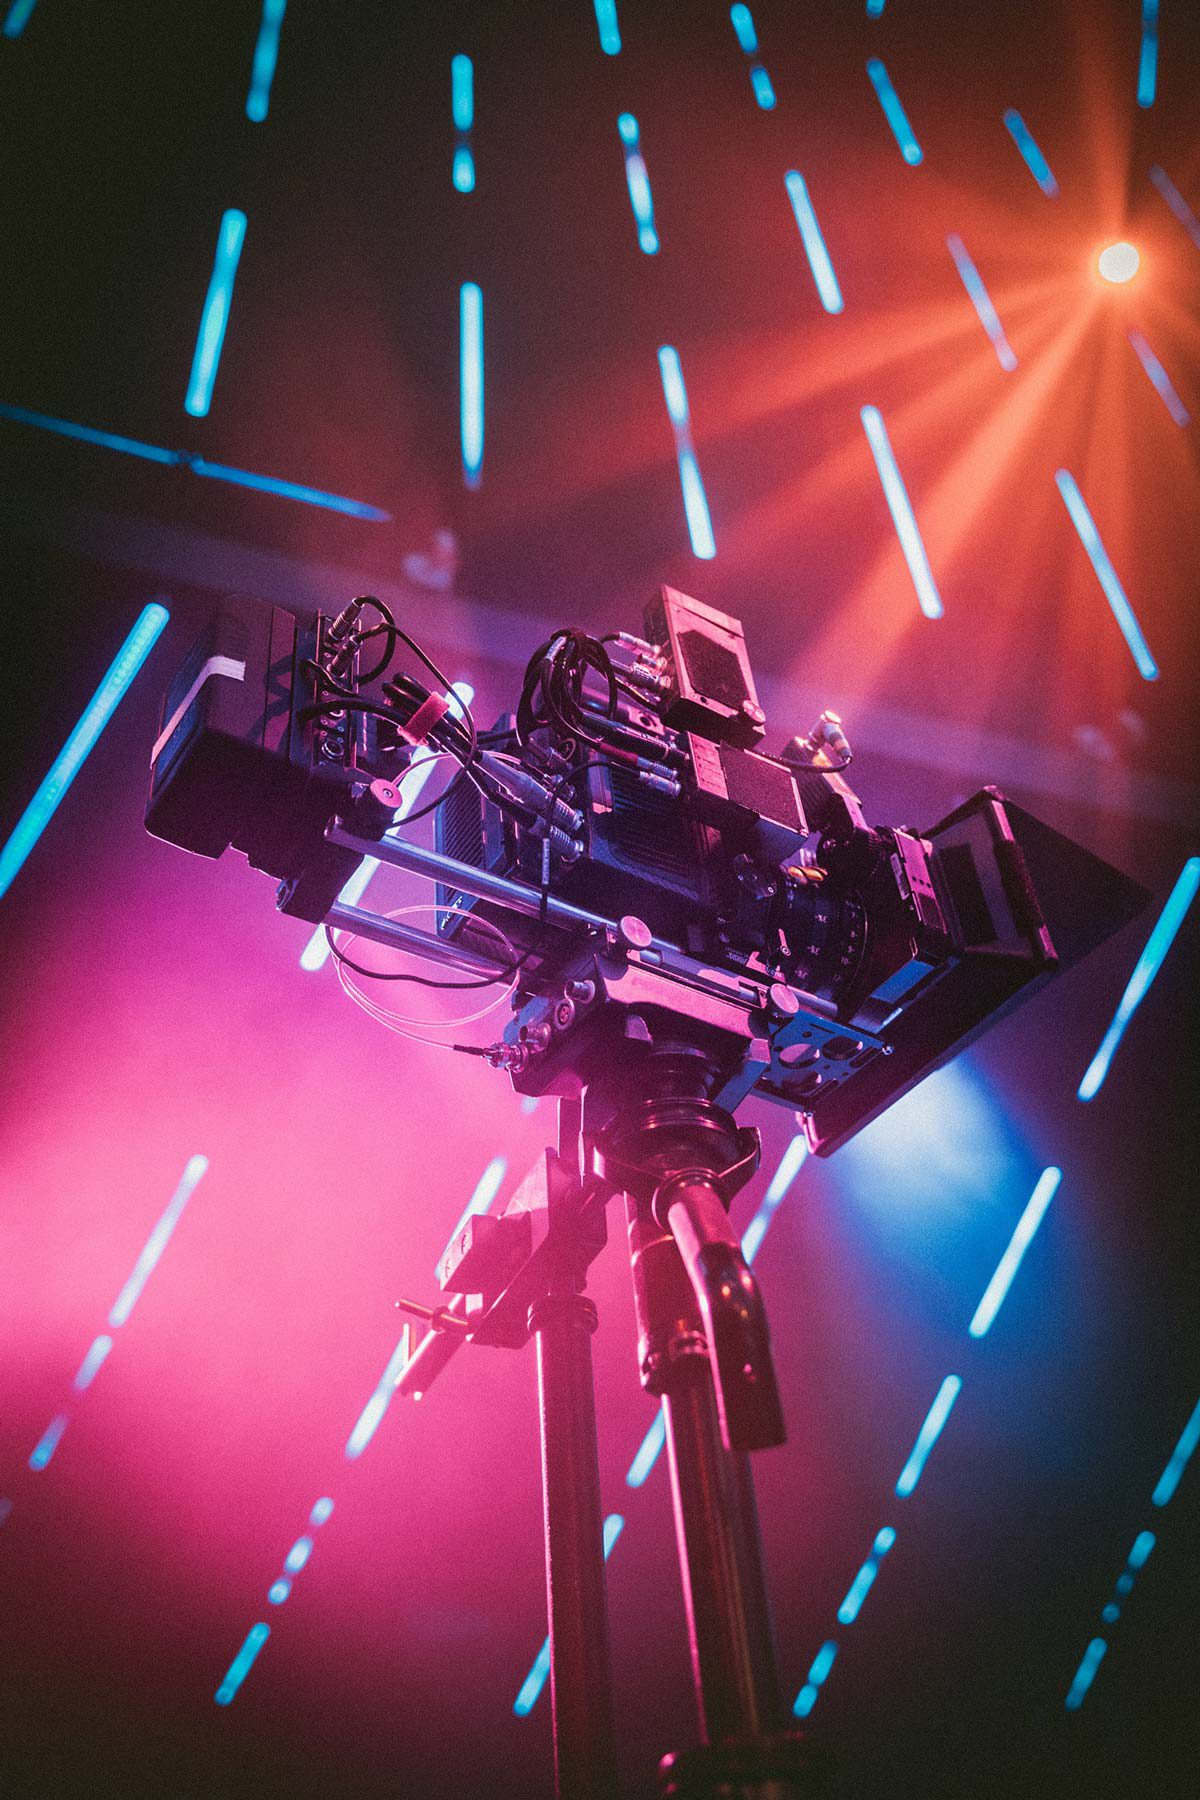 Large television camera next to bright orange and purple lights.